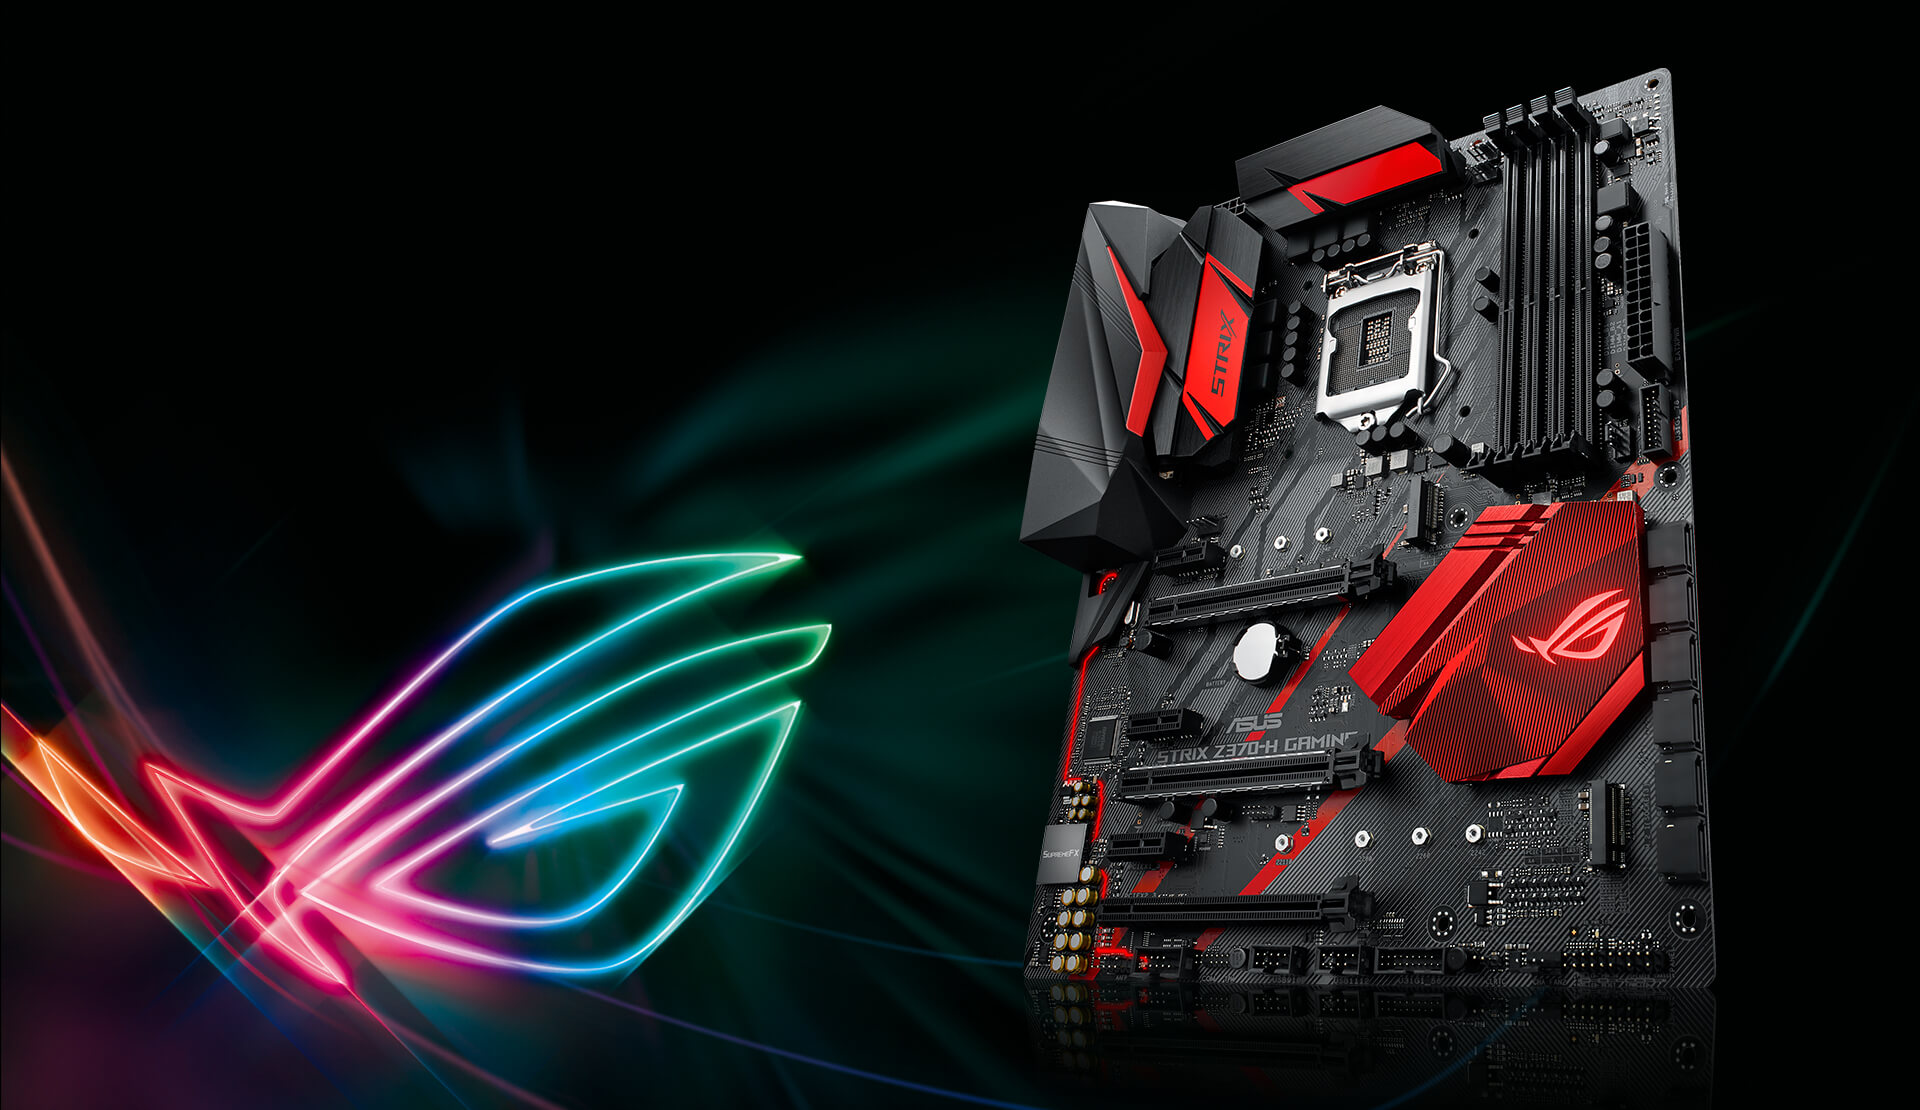 ROG STRIX Z370-H GAMING | Motherboards | ASUS USA